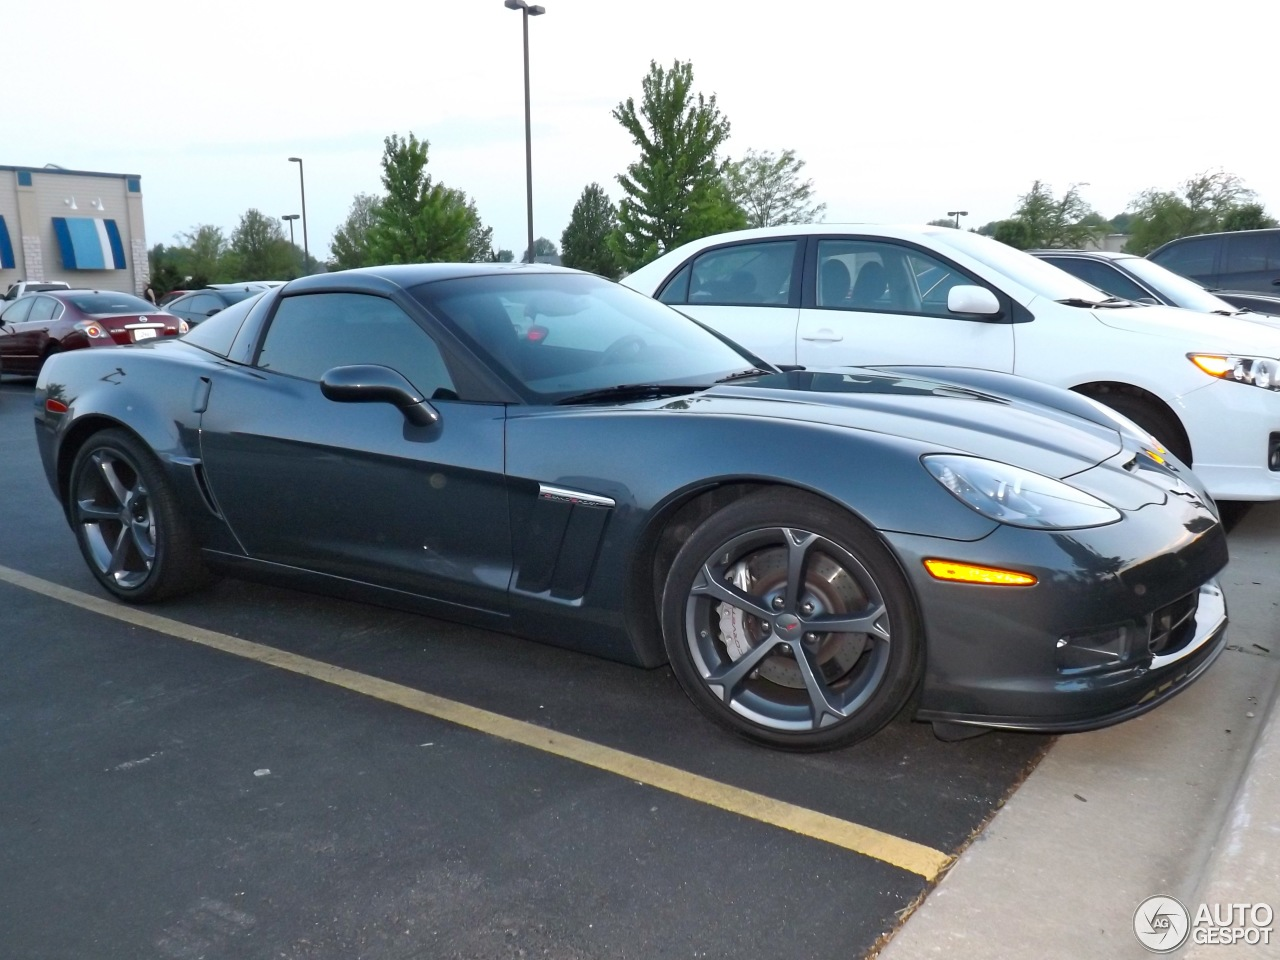 chevrolet corvette c6 grand sport 19 may 2013 autogespot. Black Bedroom Furniture Sets. Home Design Ideas